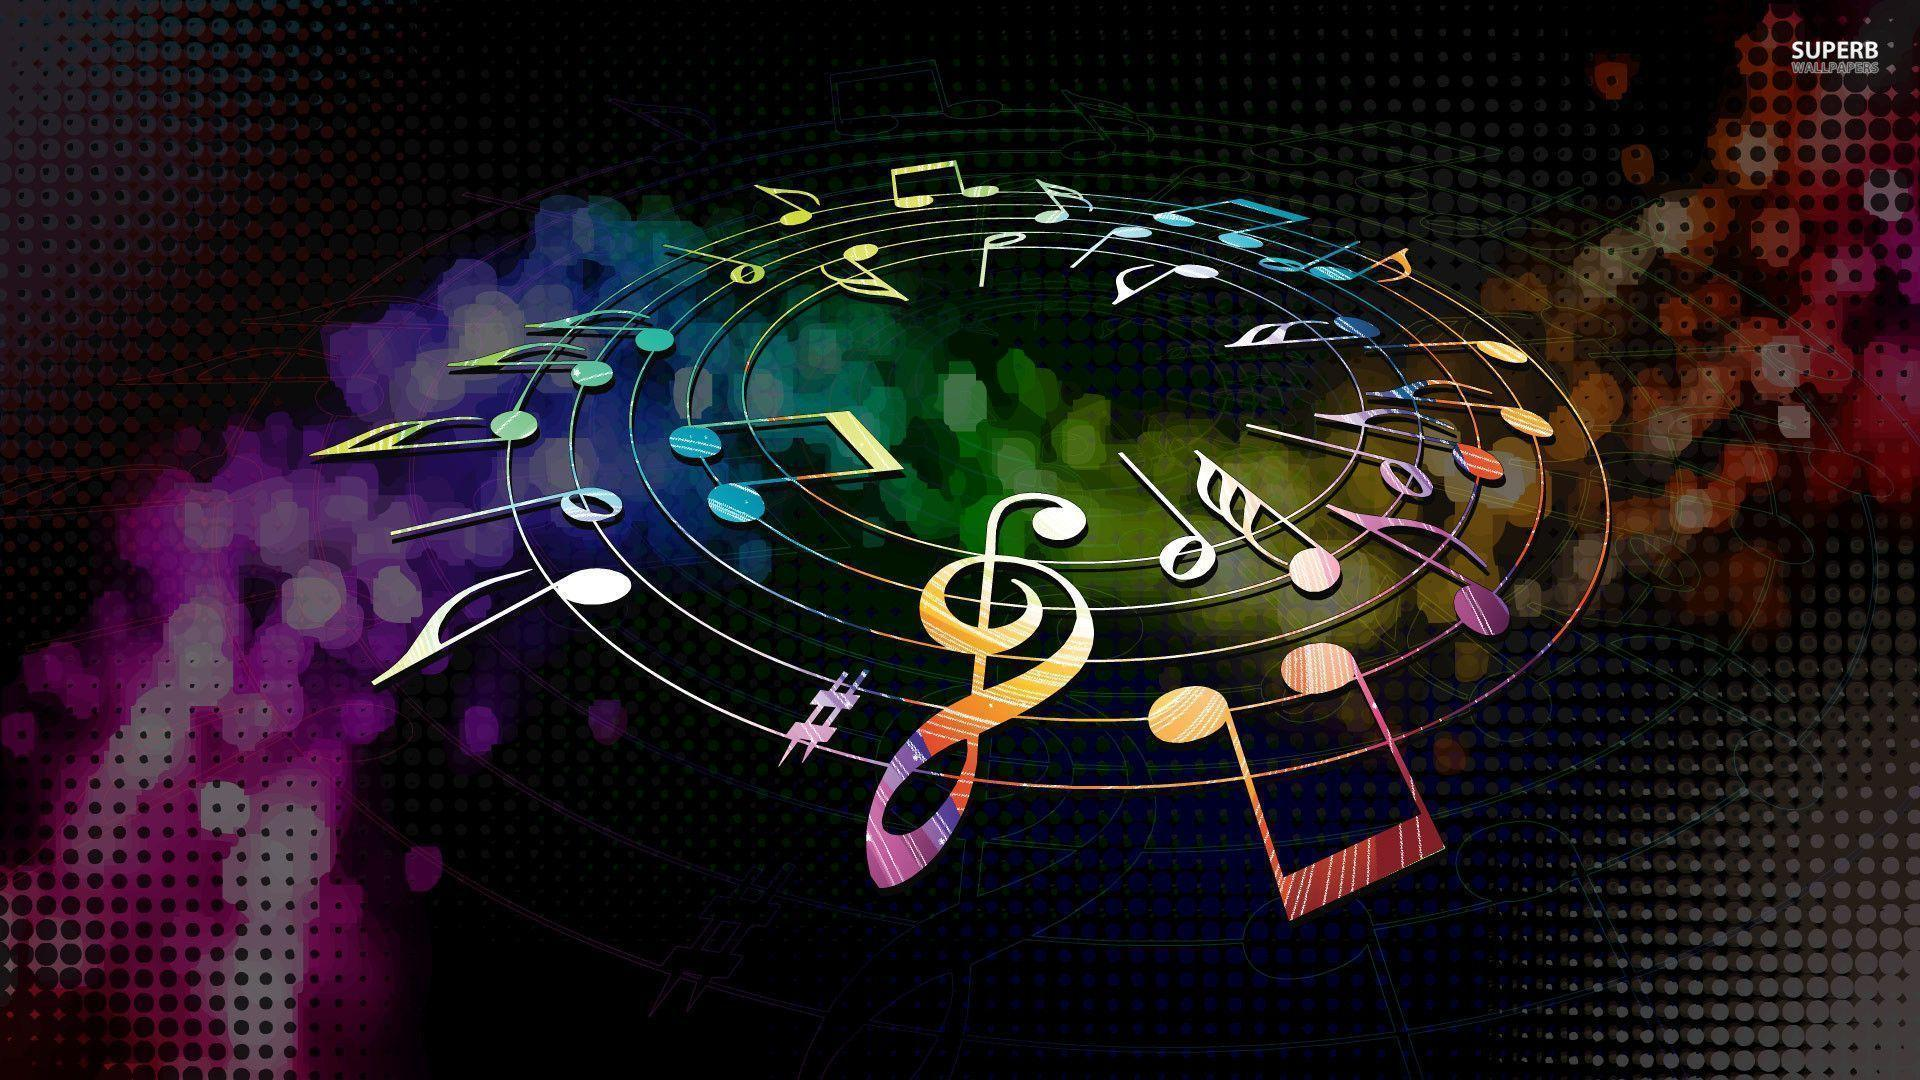 Music note wallpapers wallpaper cave - Wallpaper 1920x1080 music ...